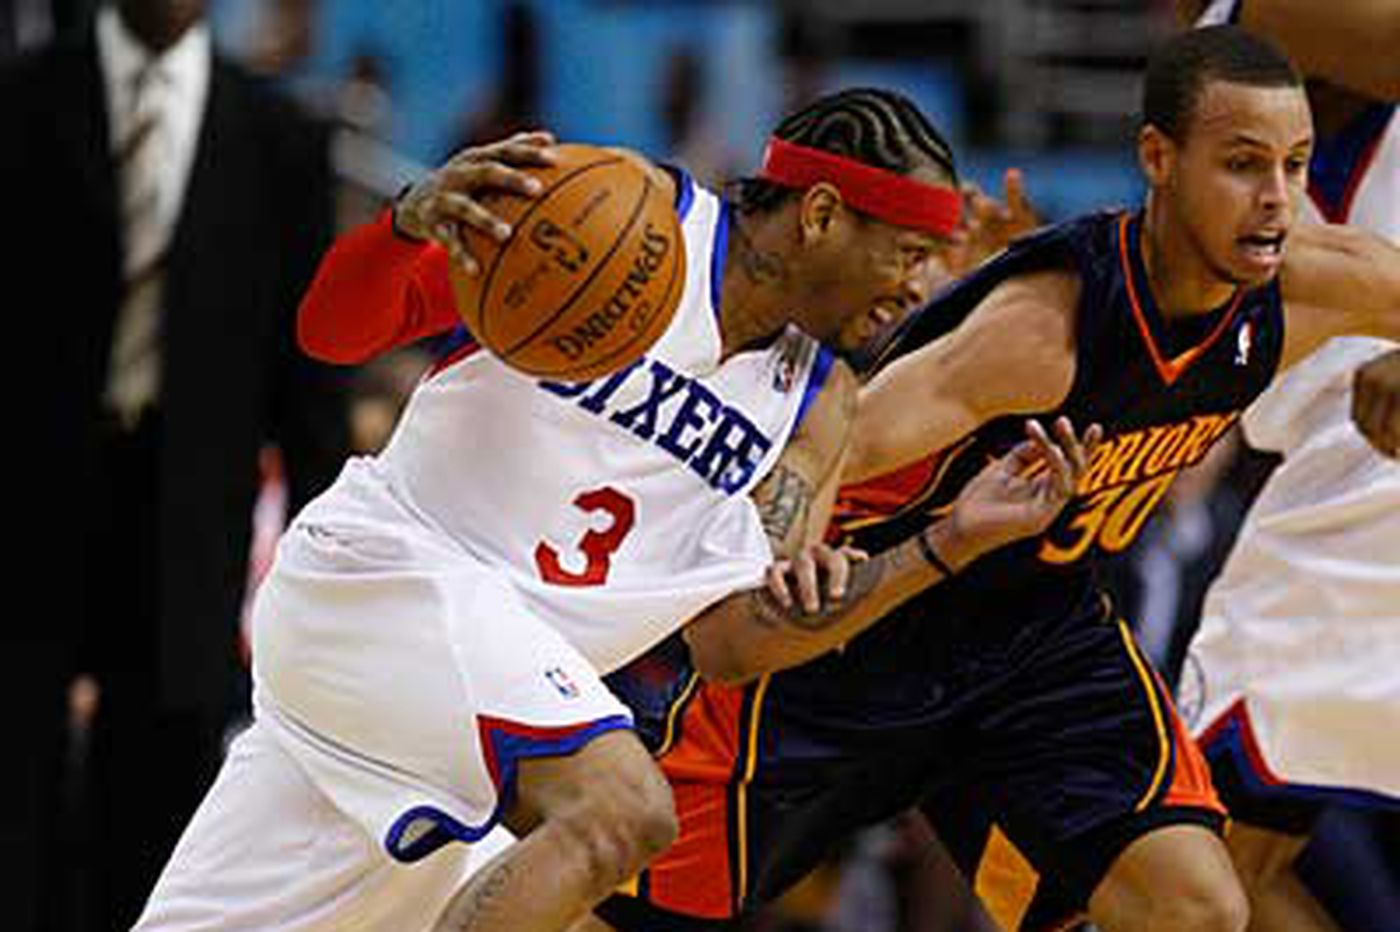 Injured Iverson to miss 76ers' game with Celtics